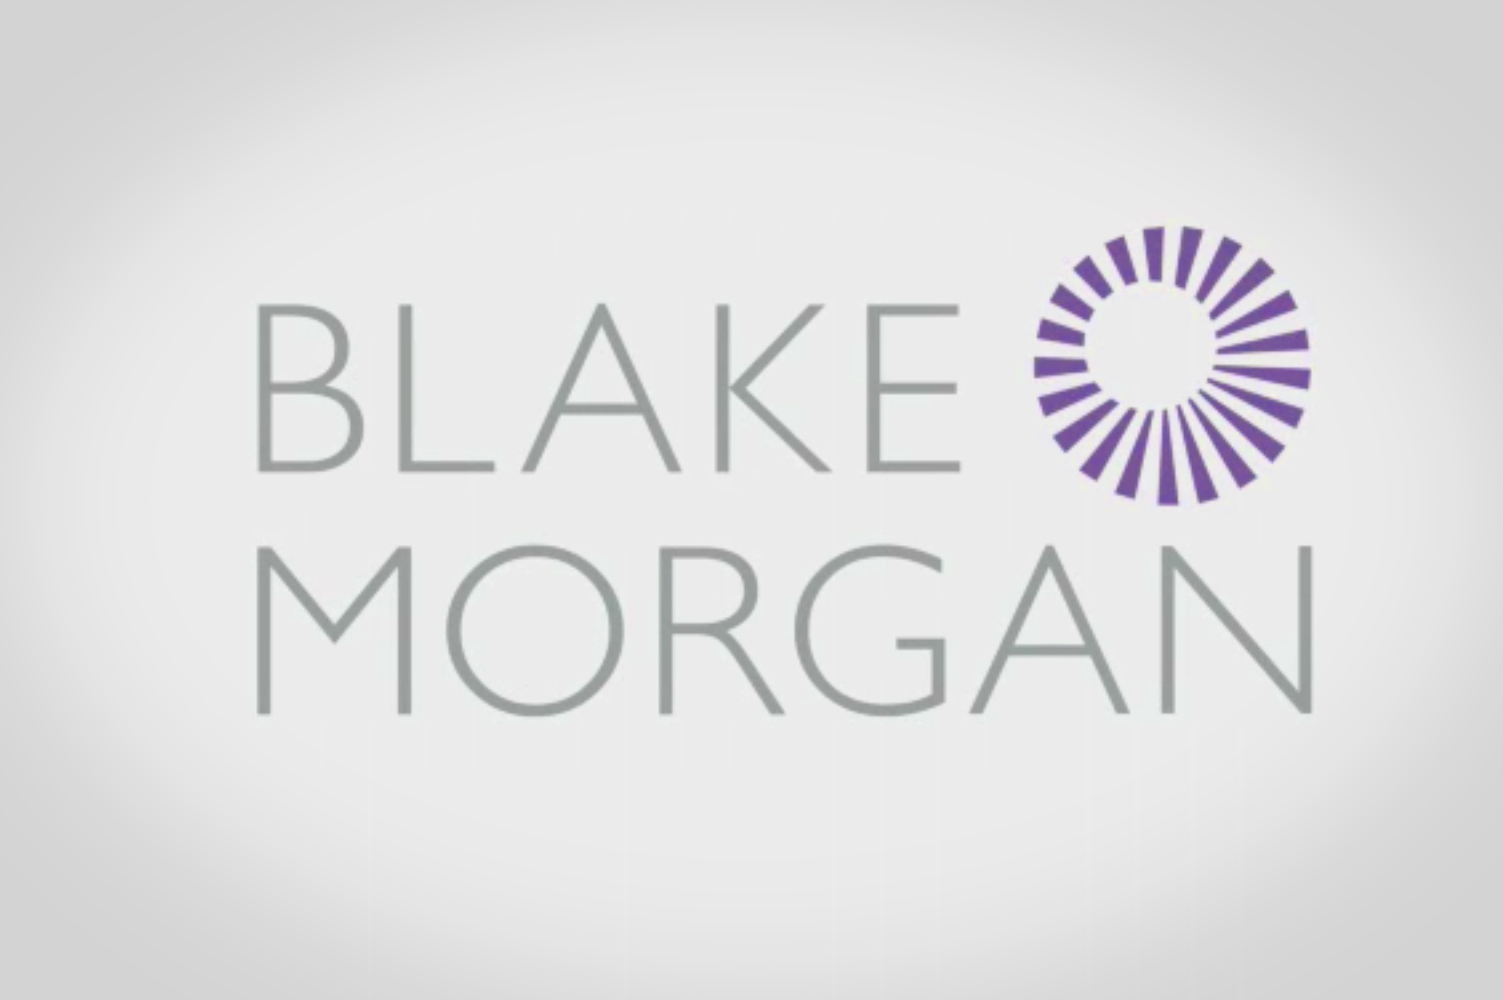 EU Referendum videos for Blake Morgan